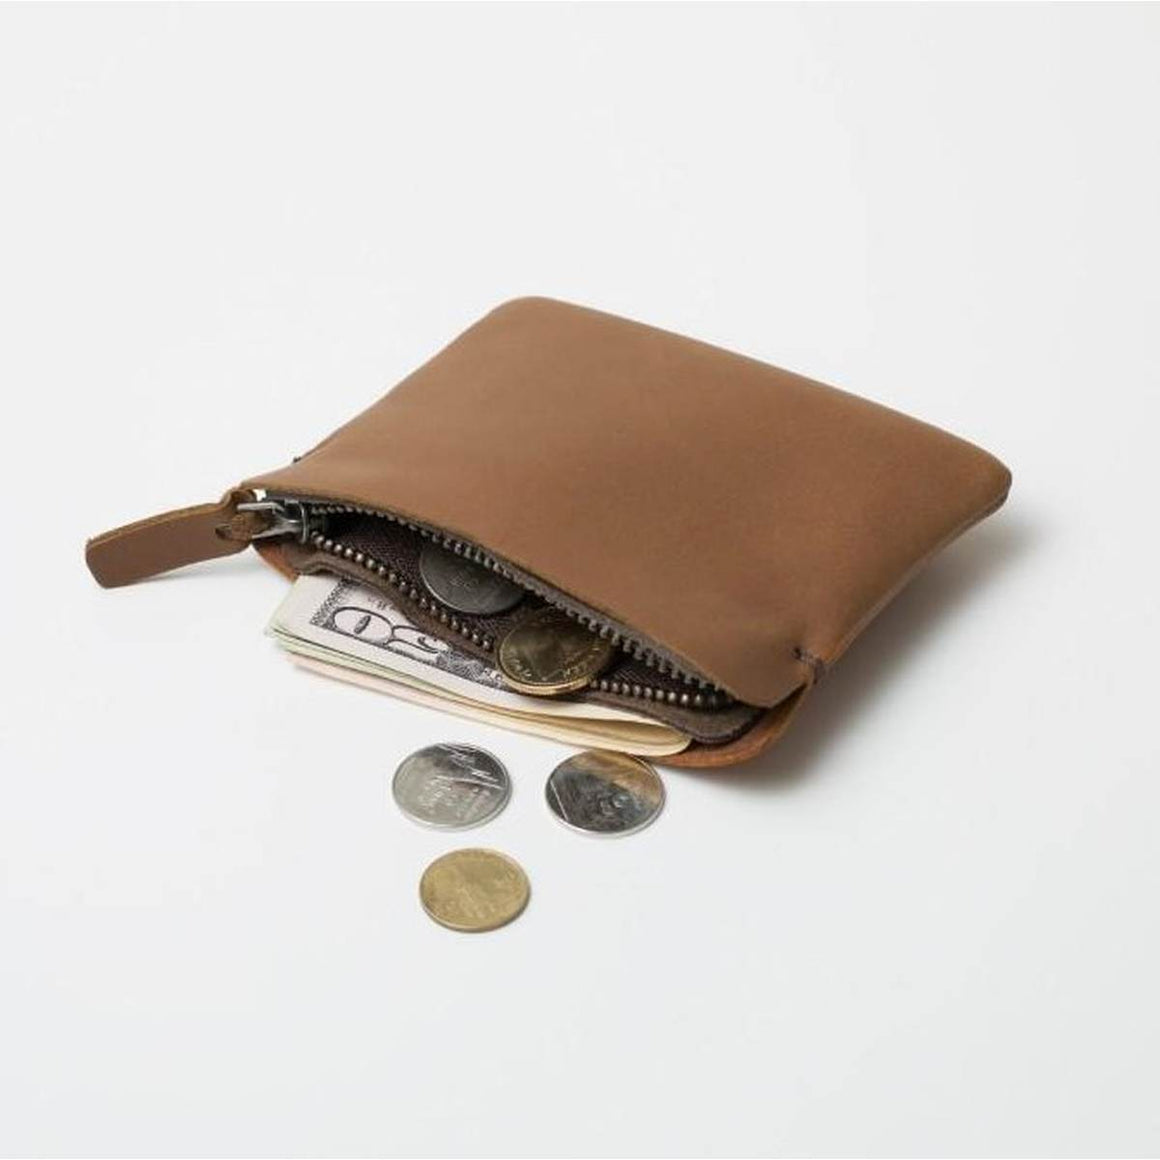 A small tan leather wallet featuring pockets for bank notes and a zipped pocket for coins. shown open with money spilling out